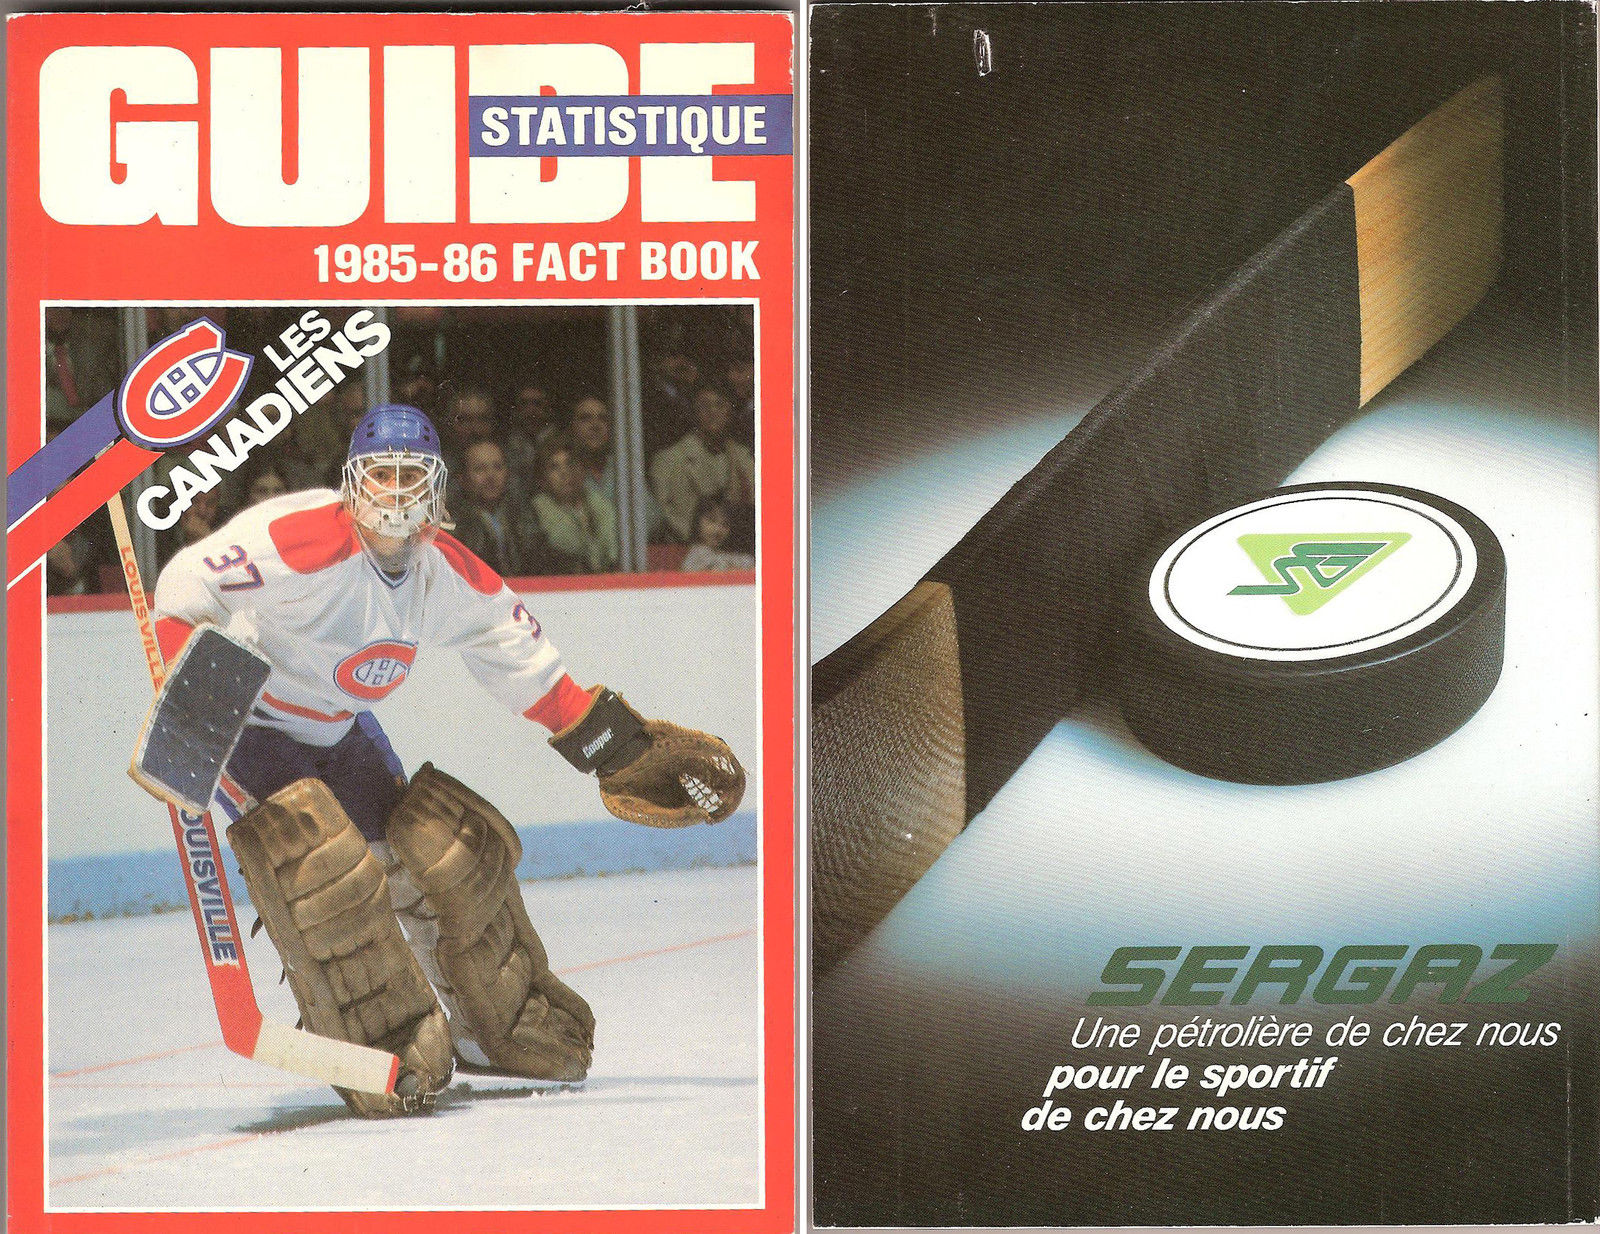 Rare 1985-86 Montreal Canadiens Patrick Roy Rookie Year Media Guide